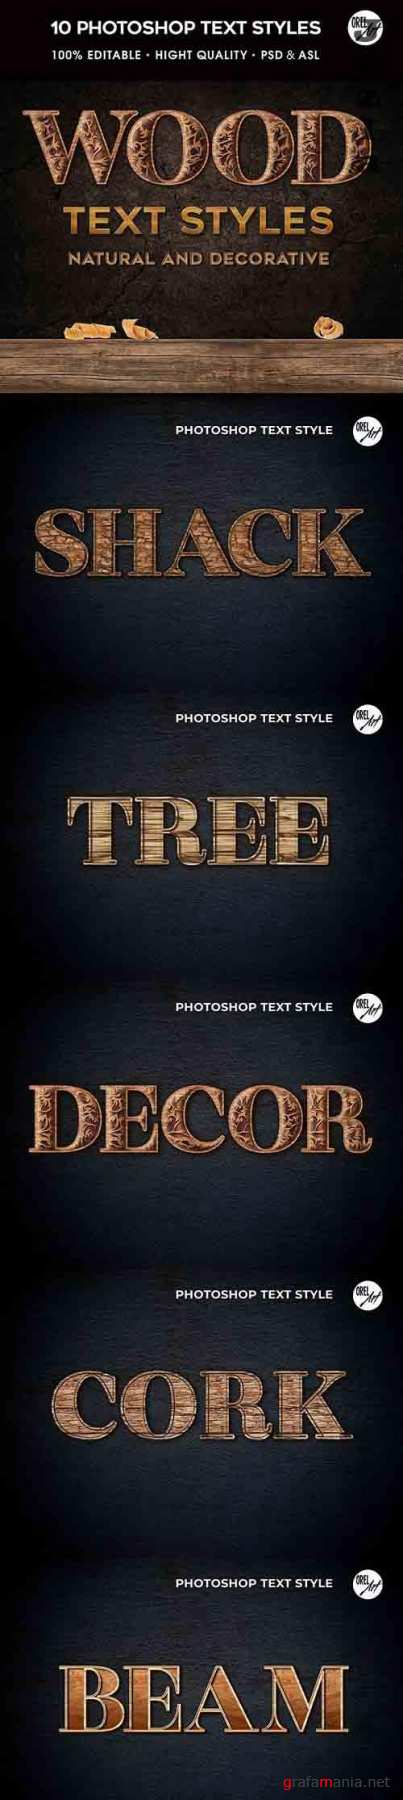 GraphicRiver - Wood Photoshop Styles 30366448